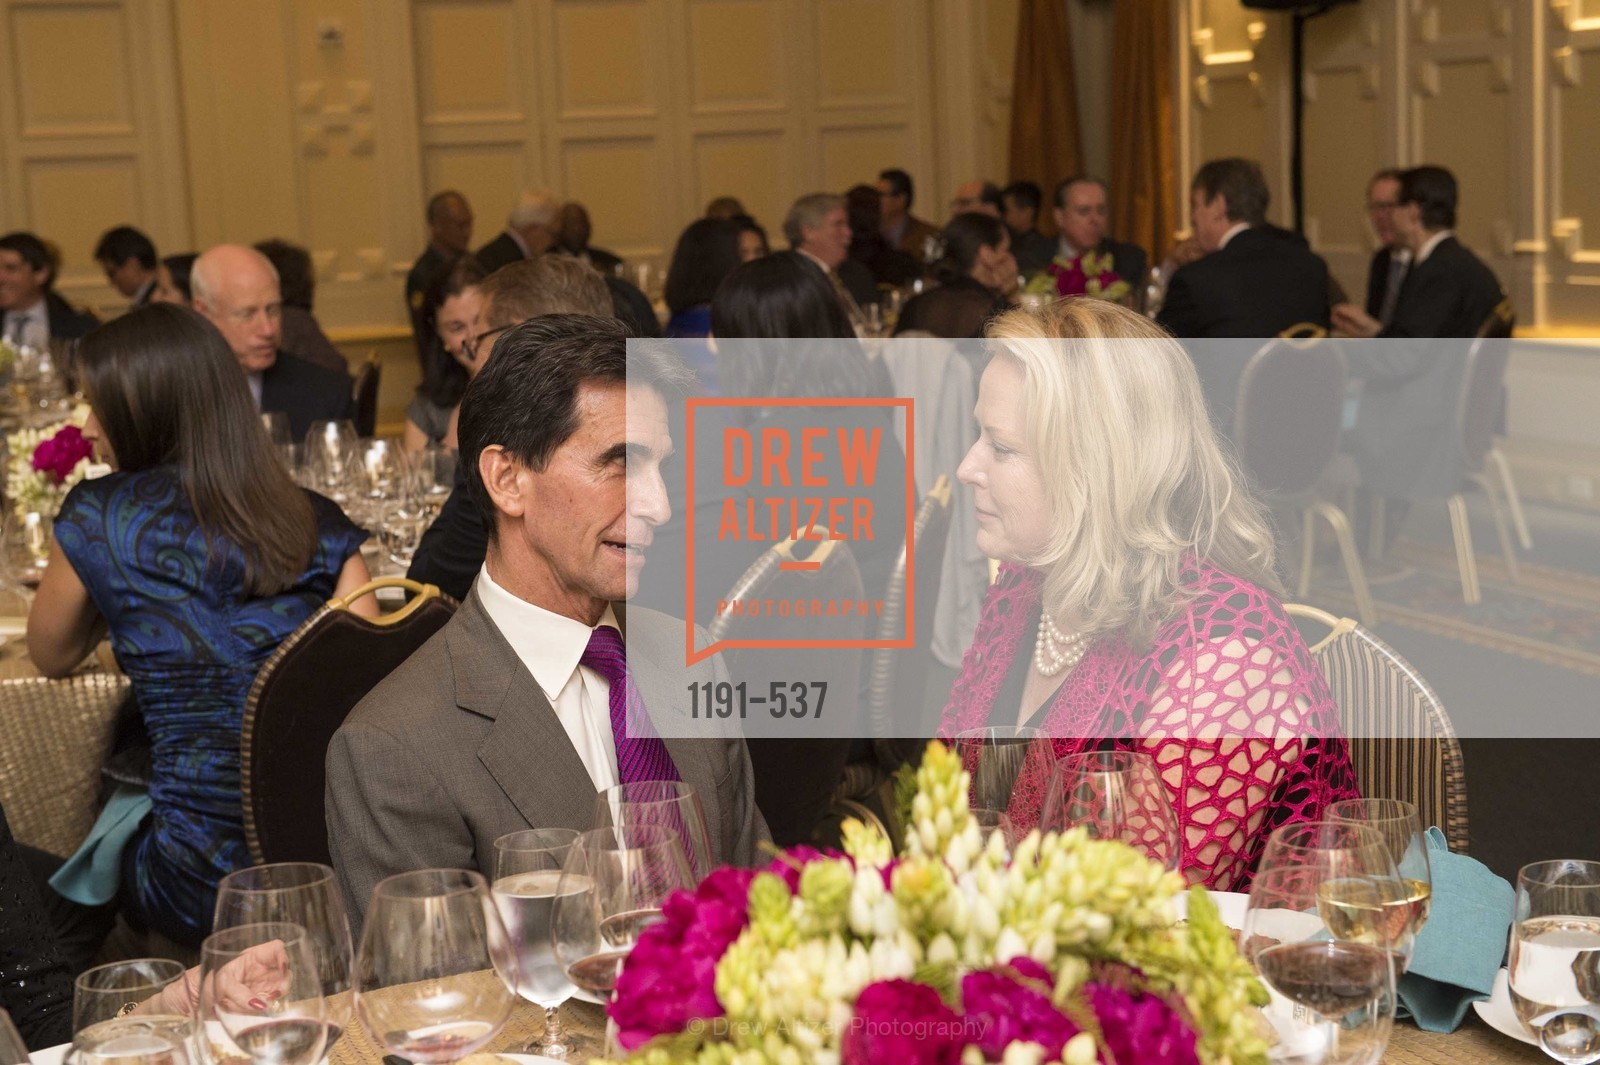 Mark Leno, Nancy Oakes, TOP OF THE MARK'S 75TH Anniversary Party, US, November 7th, 2014,Drew Altizer, Drew Altizer Photography, full-service agency, private events, San Francisco photographer, photographer california